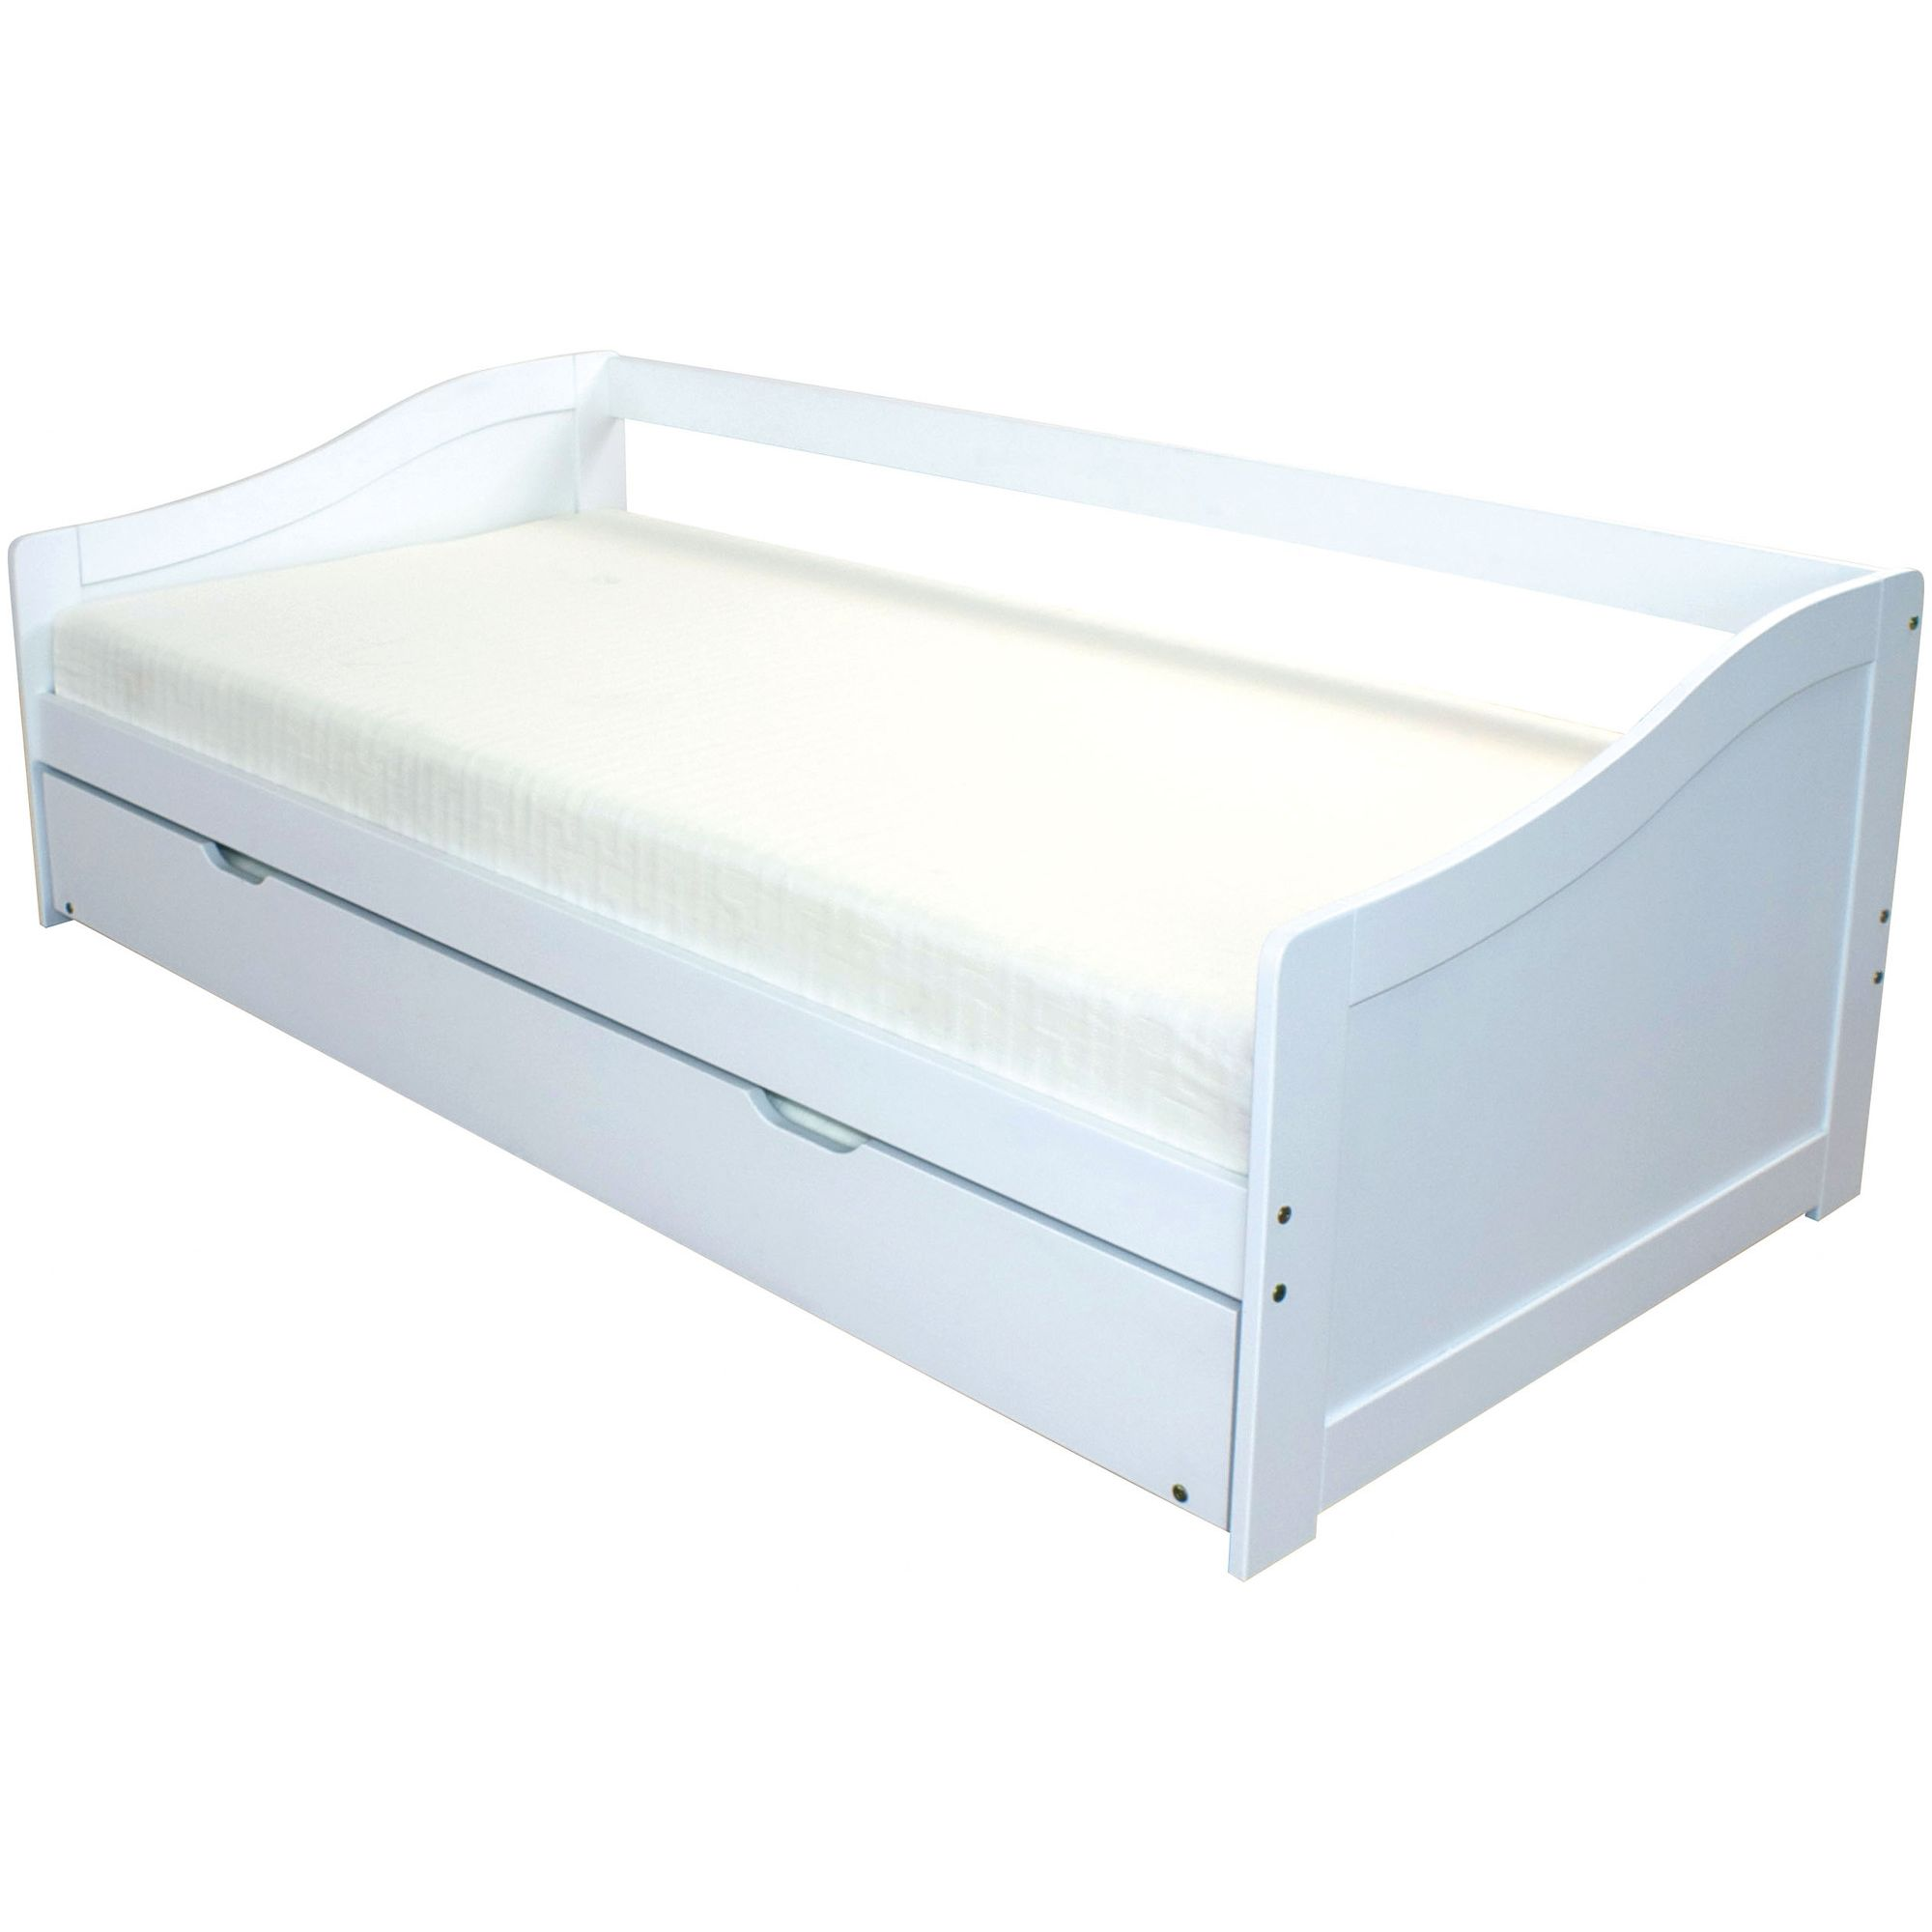 Gfw Oregon Day Bed Frame